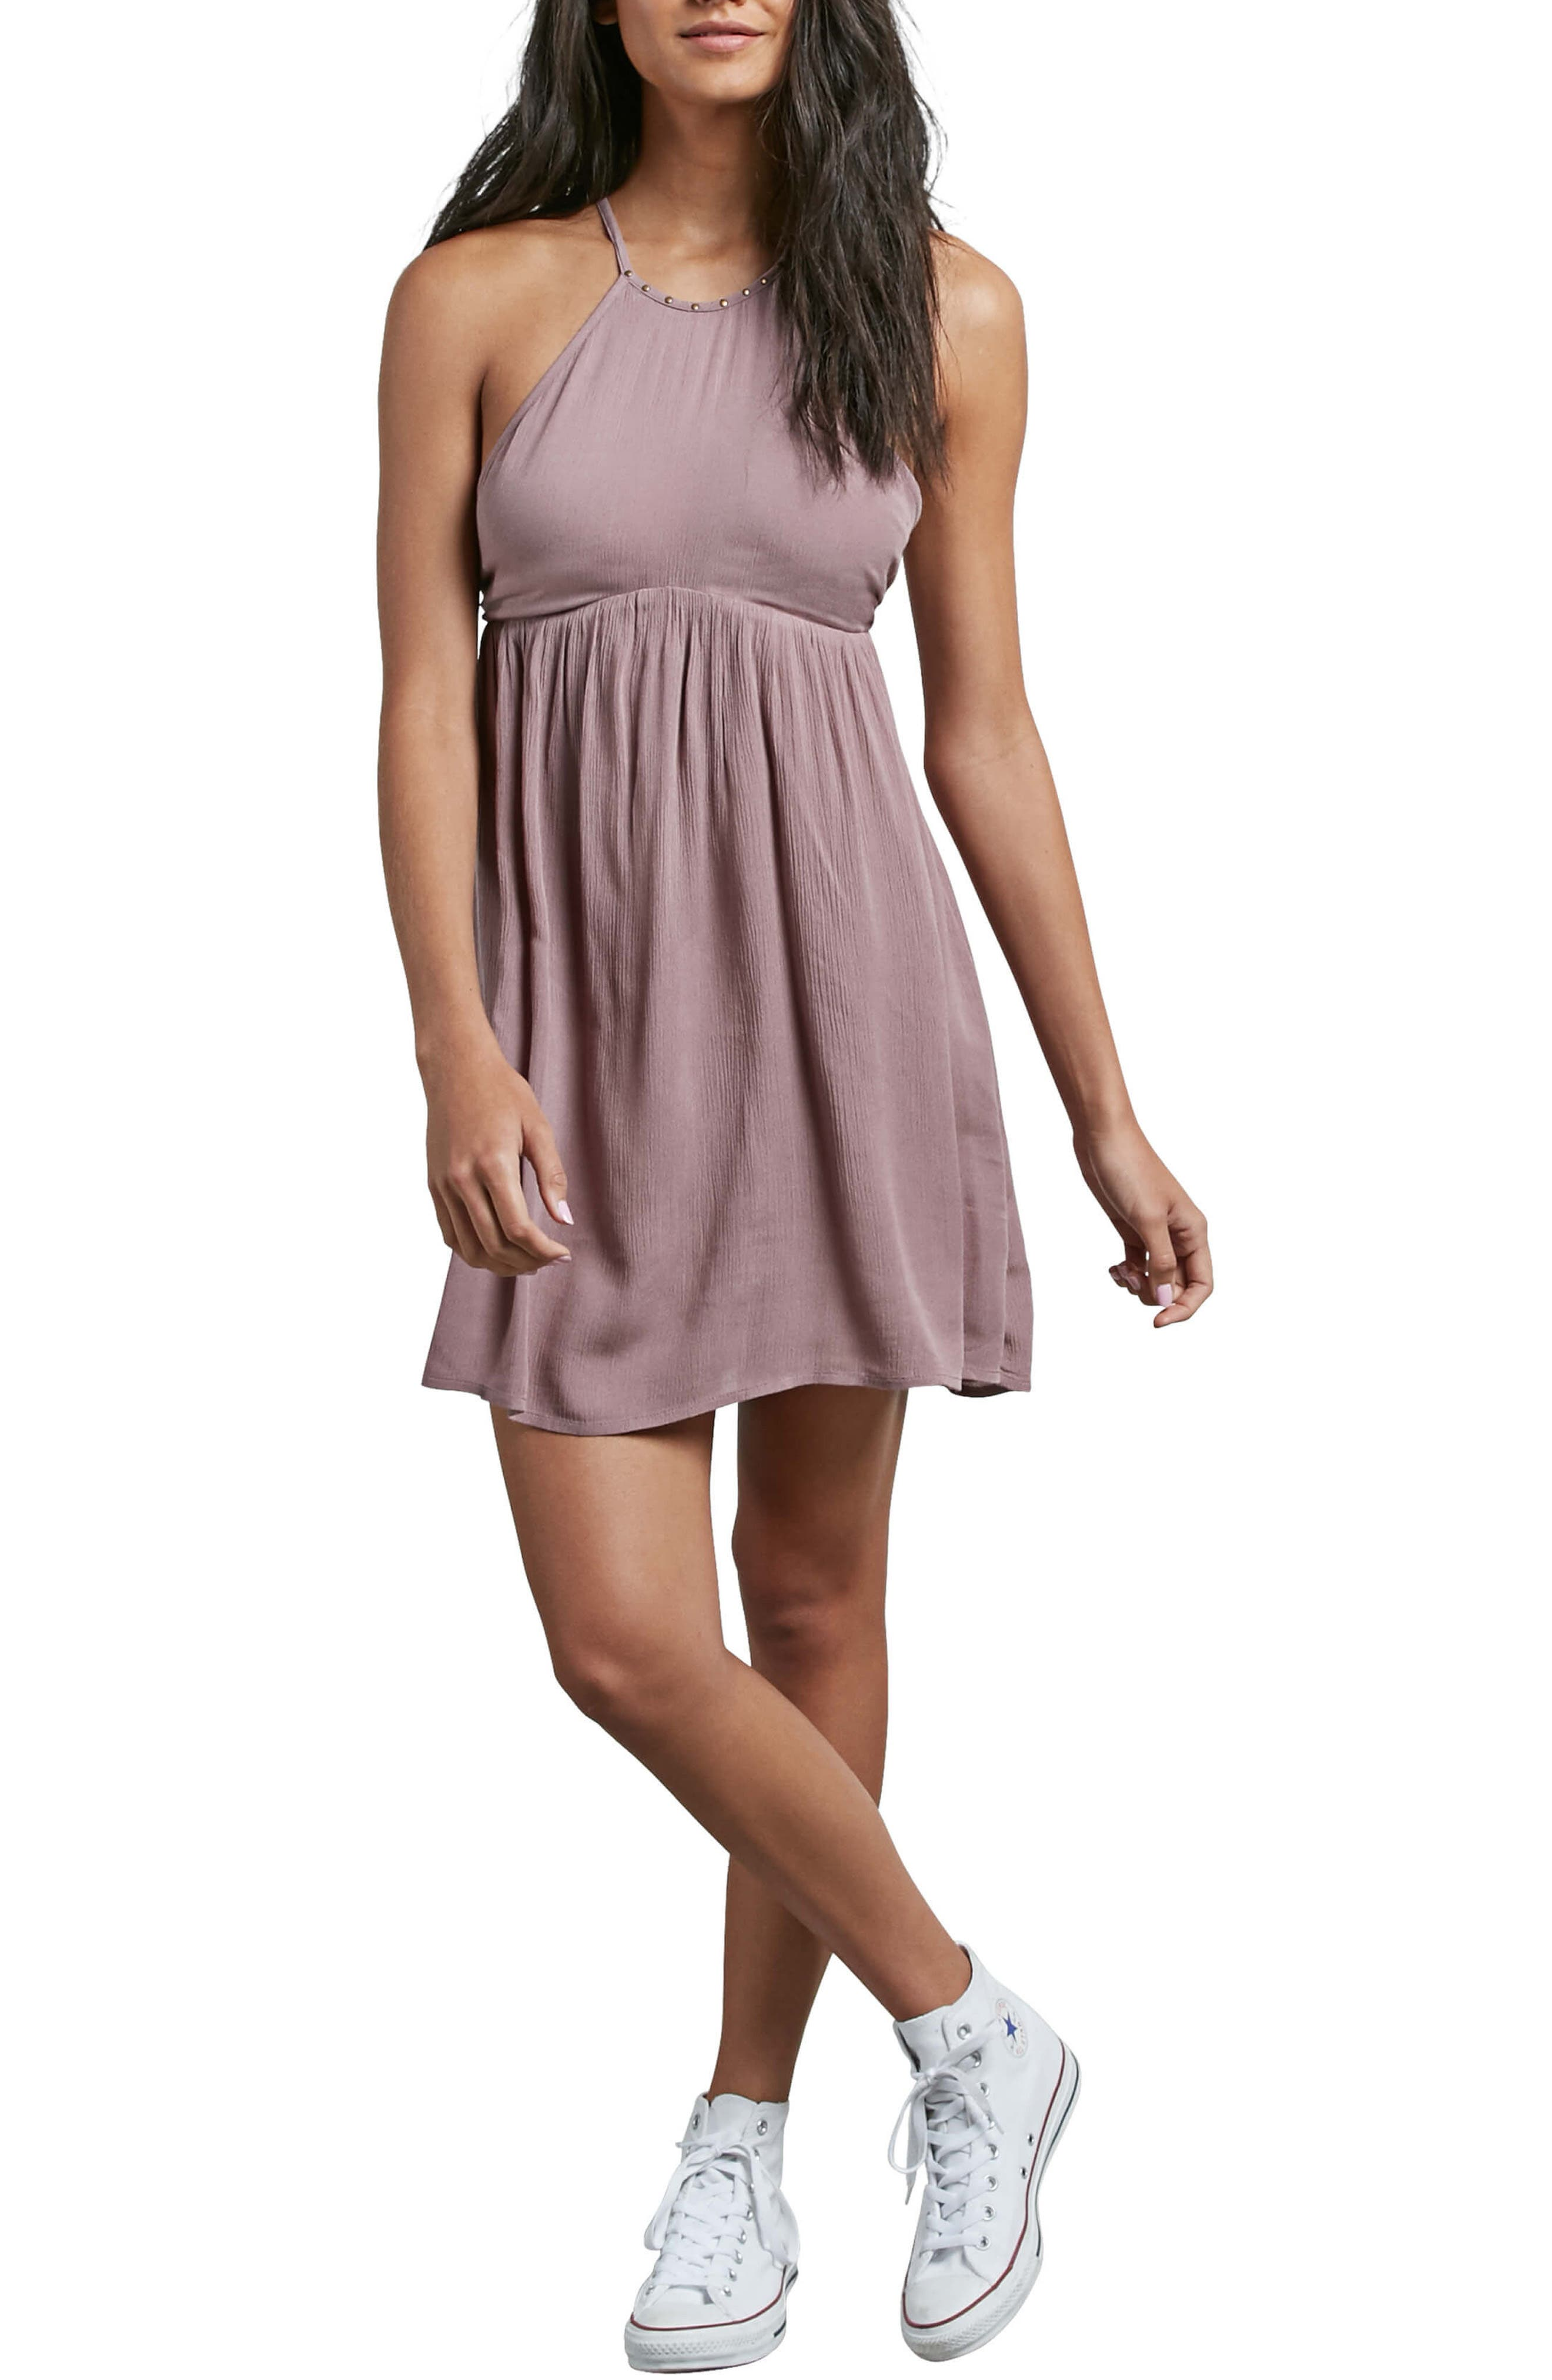 Volcom What a Stud Babydoll Dress